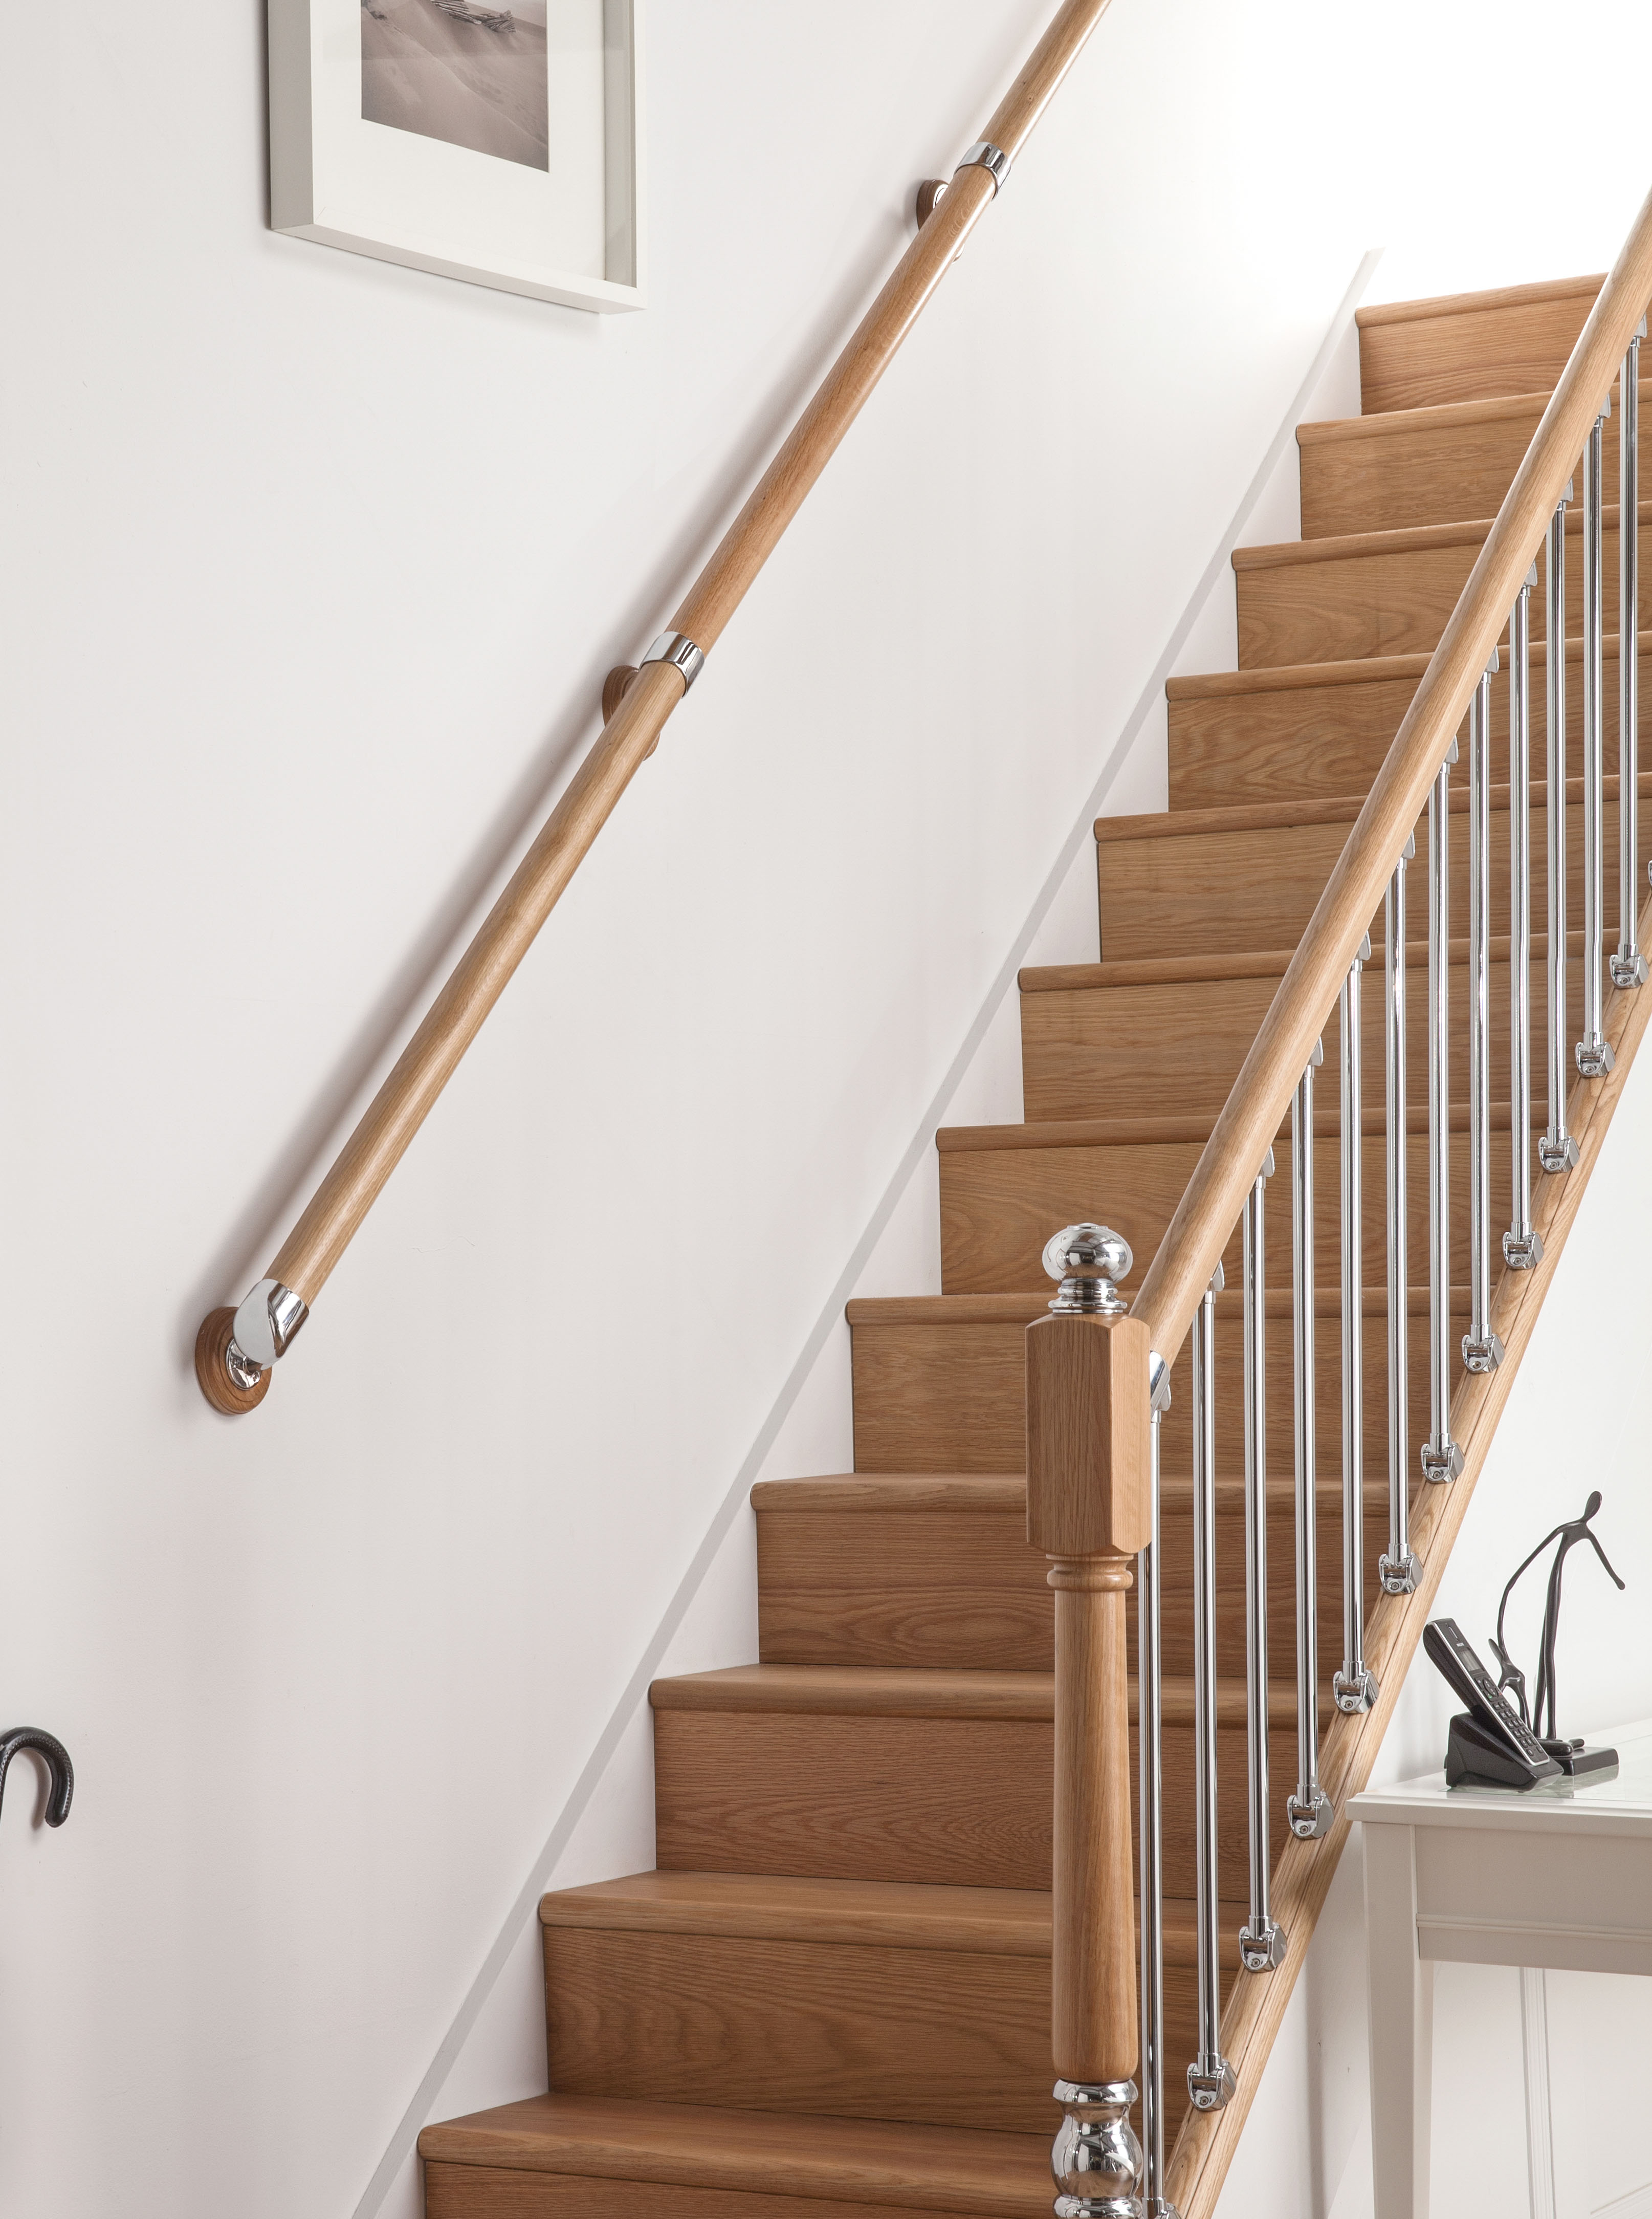 AXXYS Wall Mounted Handrail Kit 4000mm Select Timber and Metal Finish